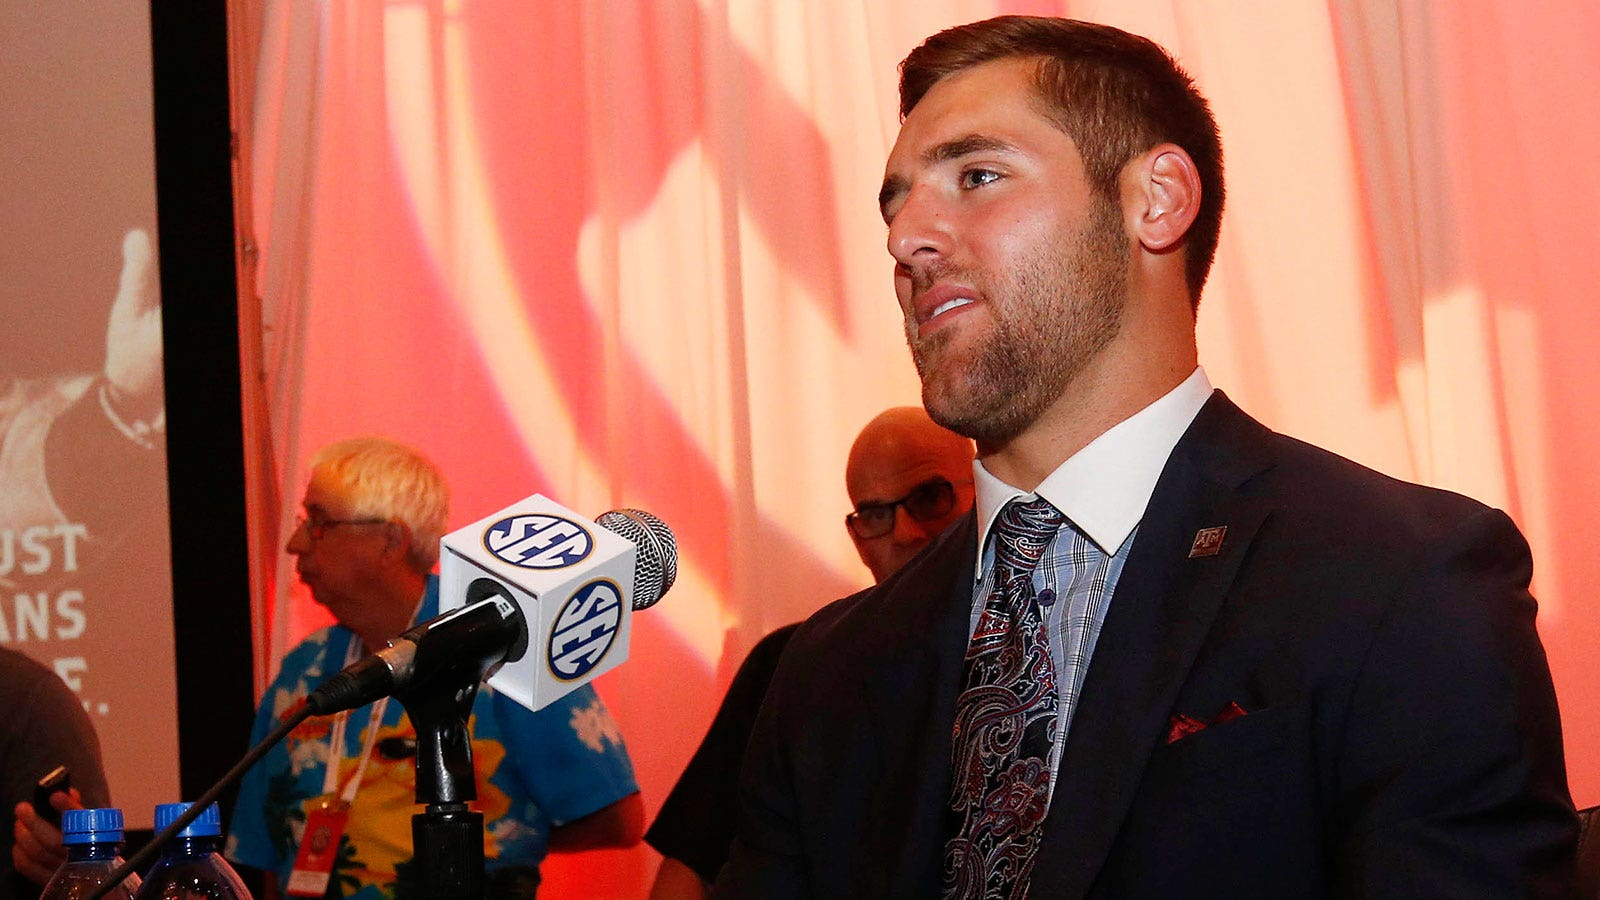 The odyssey of Trevor Knight has one more chapter to write